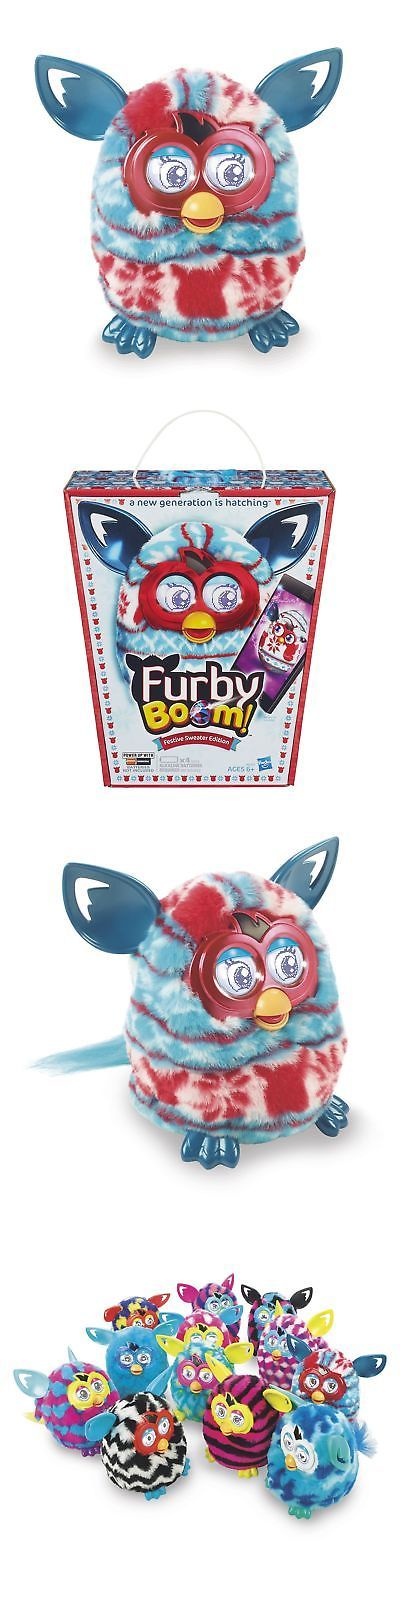 Furby 1083: Furby Boom Plush Toy (Holiday Sweater Edition) New -> BUY IT NOW ONLY: $92.03 on eBay!